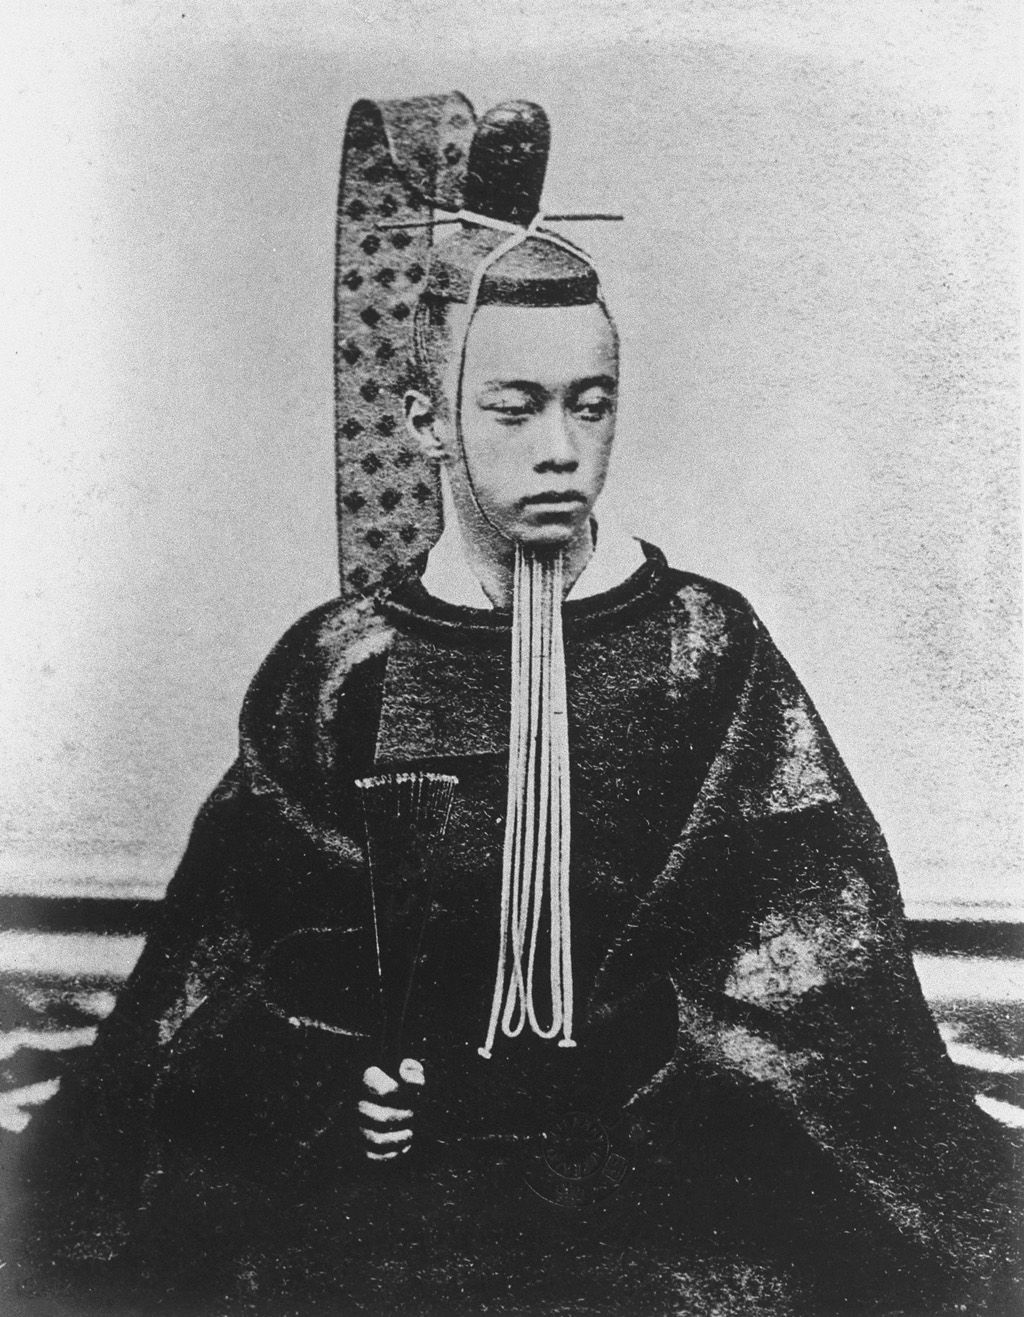 an analysis of the topic of the tokugawa shogunates power Battle of sekigahara, is not only one of the hundreds of campaign for daimyo to jockey for power, but it also determines the dominant position of tokugawa at the late 17th century in 1598, with the death of the shogun and ruler, hideyoshi toyotomi, the court emerged a chaos.